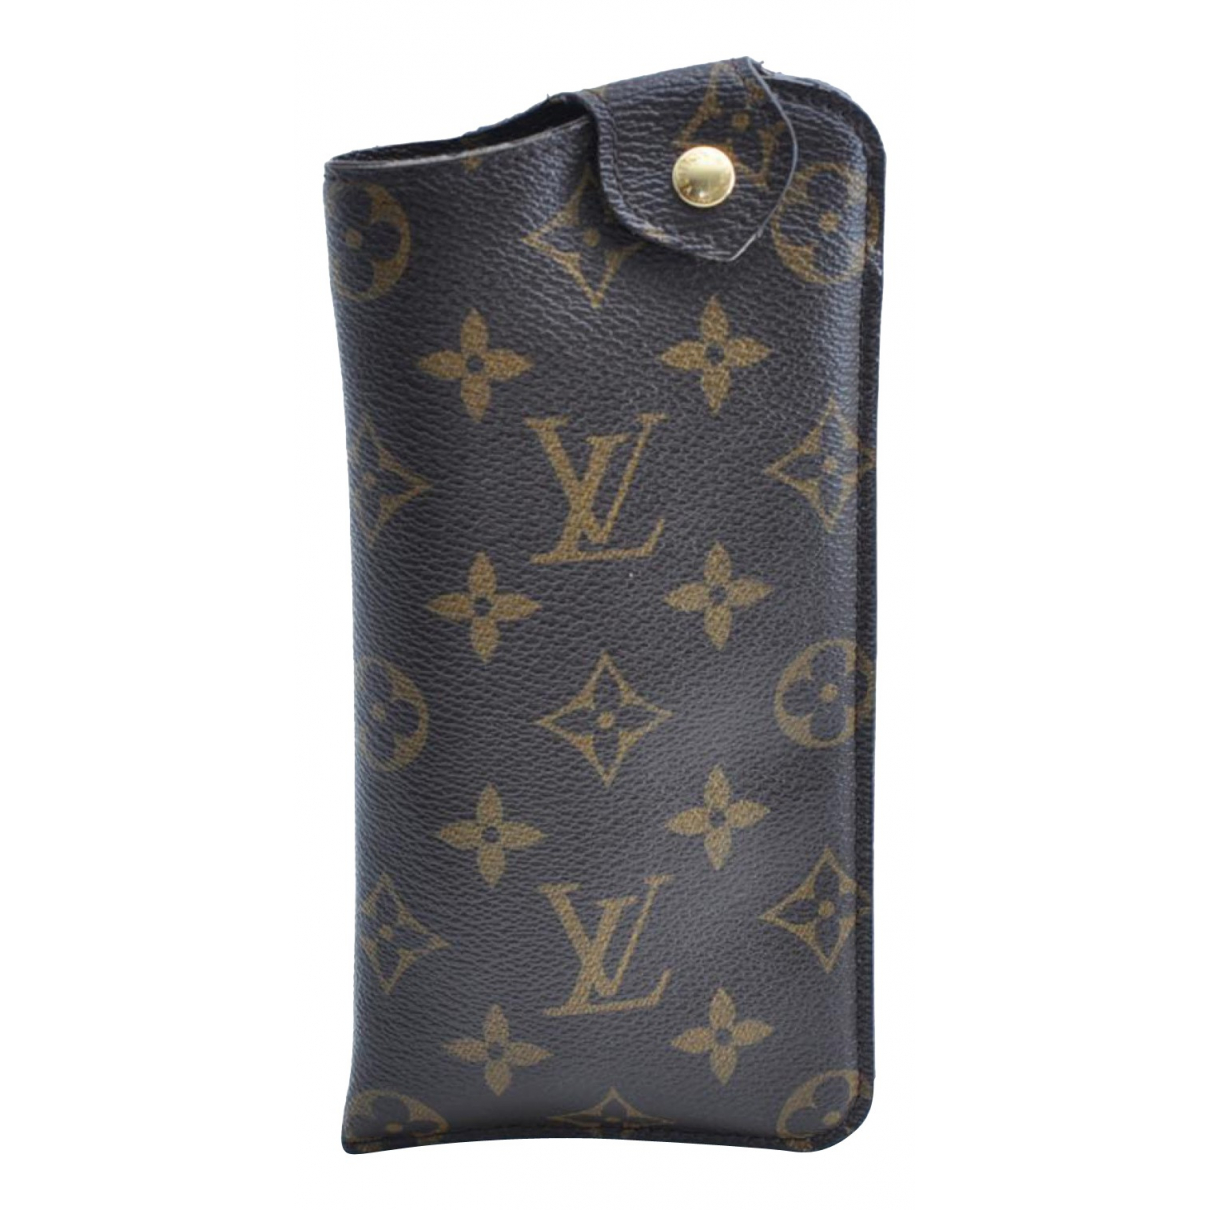 Louis Vuitton \N Kleinlederwaren in  Braun Leinen